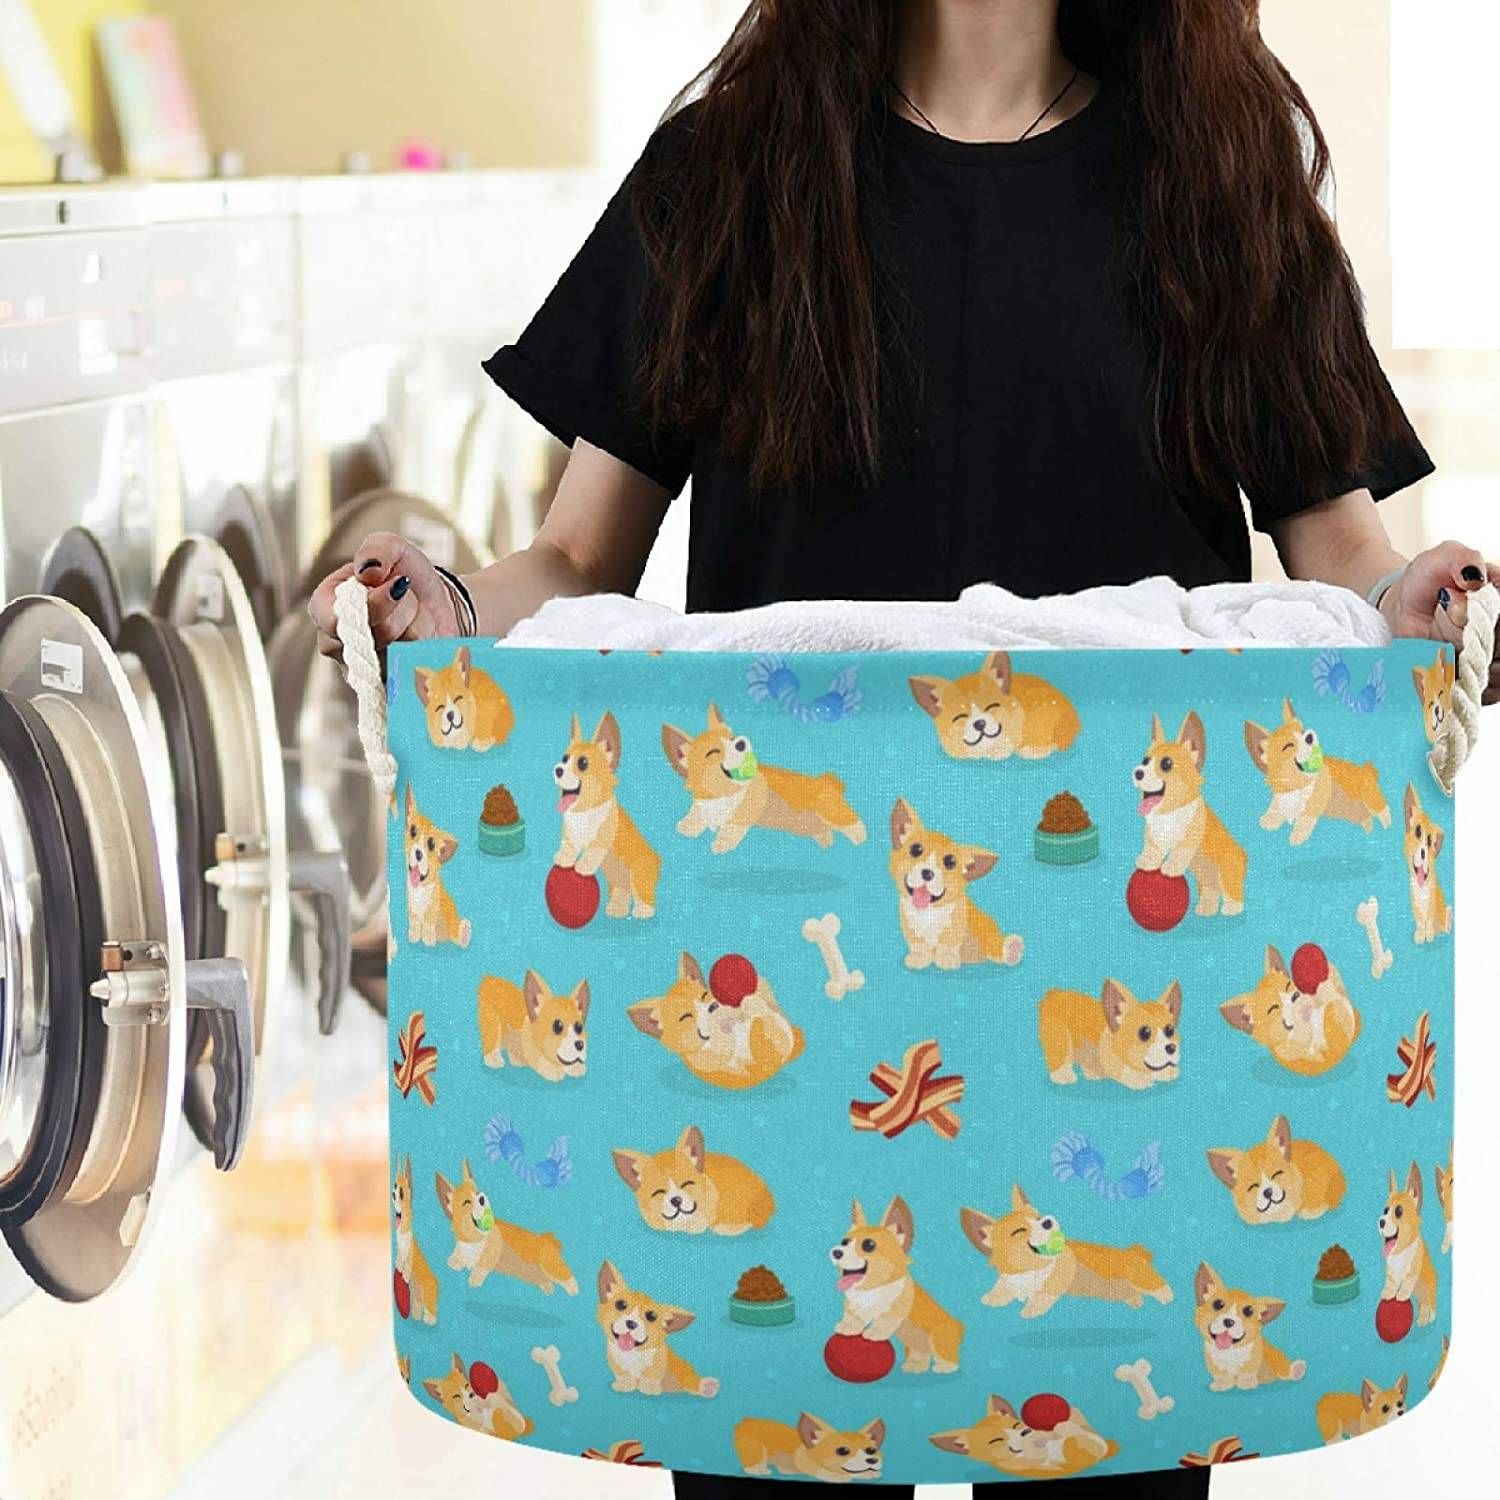 visesunny Collapsible Large Capacity Basket Funny Corgi Clothes Toy Storage Hamper with Durable Cotton Handles Home Organizer Solution for Bathroom Nursery Bedroom Laundry,Closet